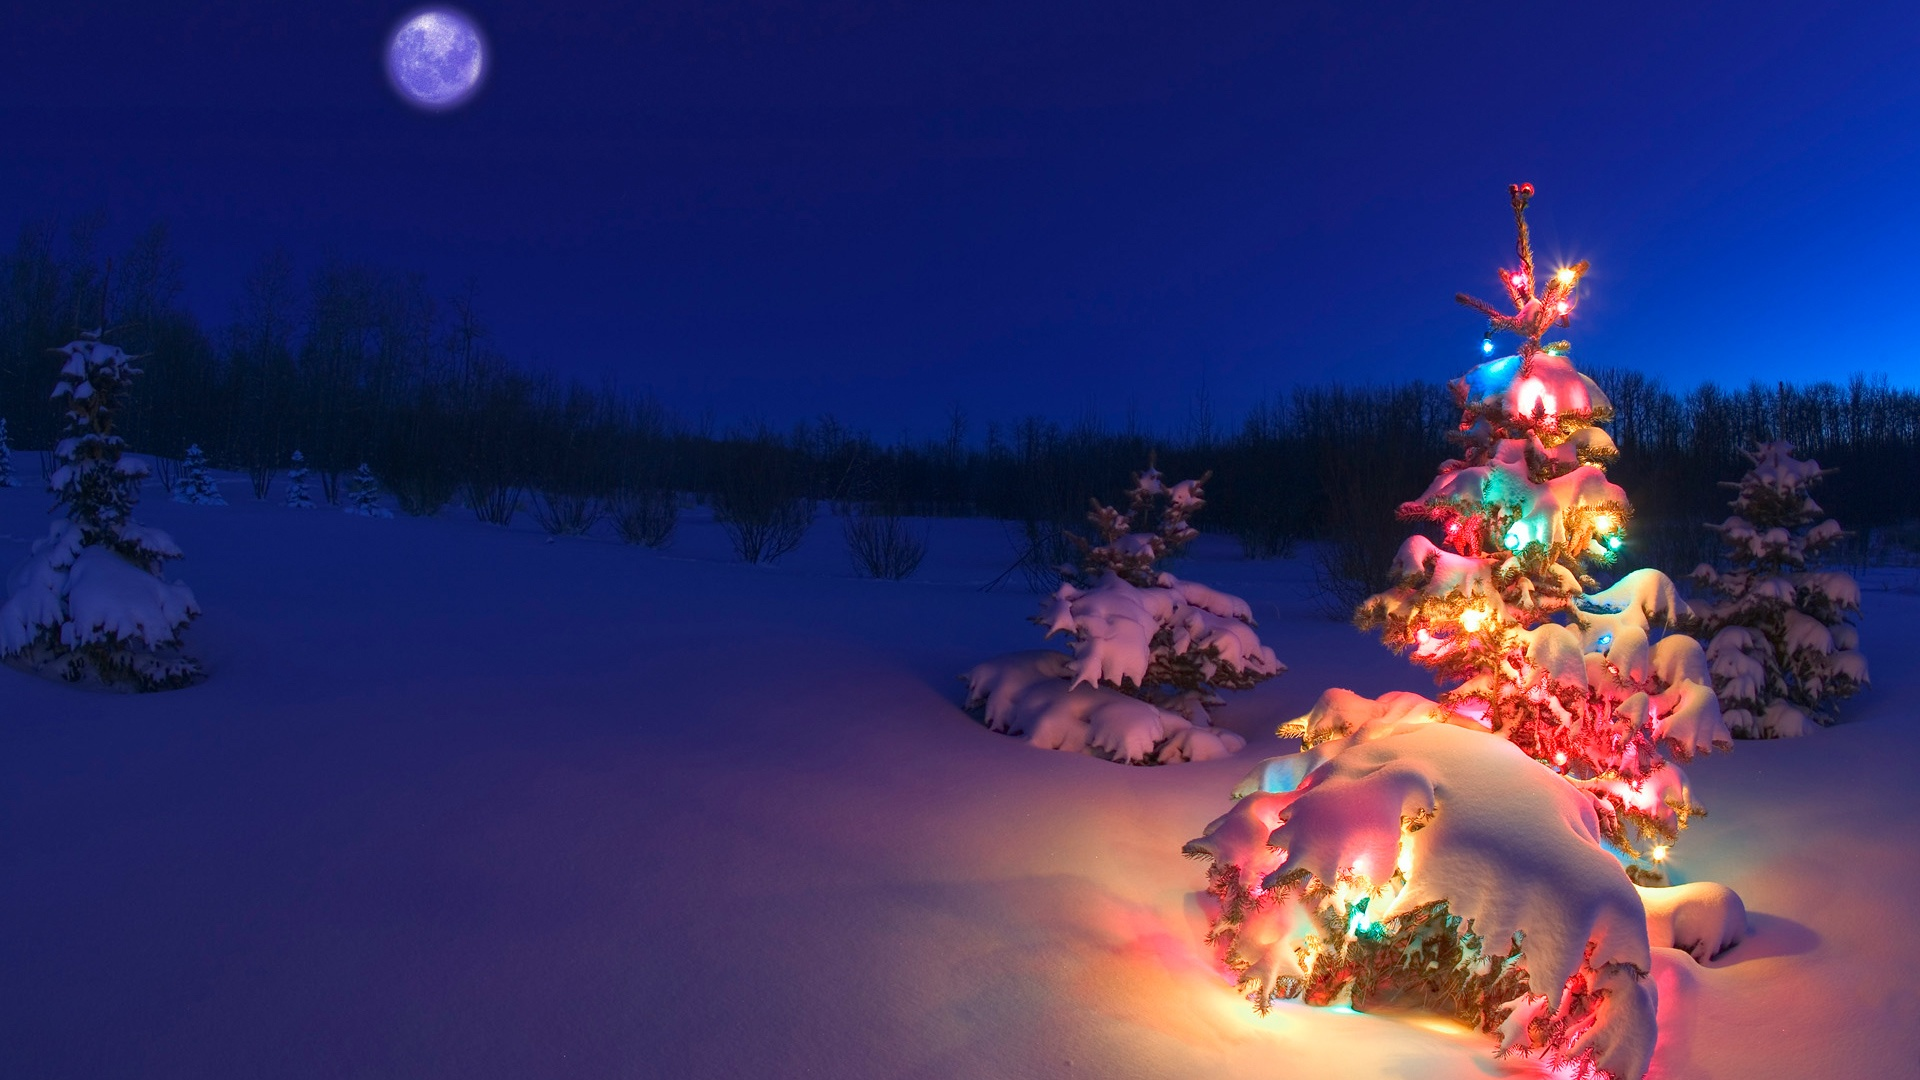 Christmas Tree Snow Wallpaper - WallpaperSafari